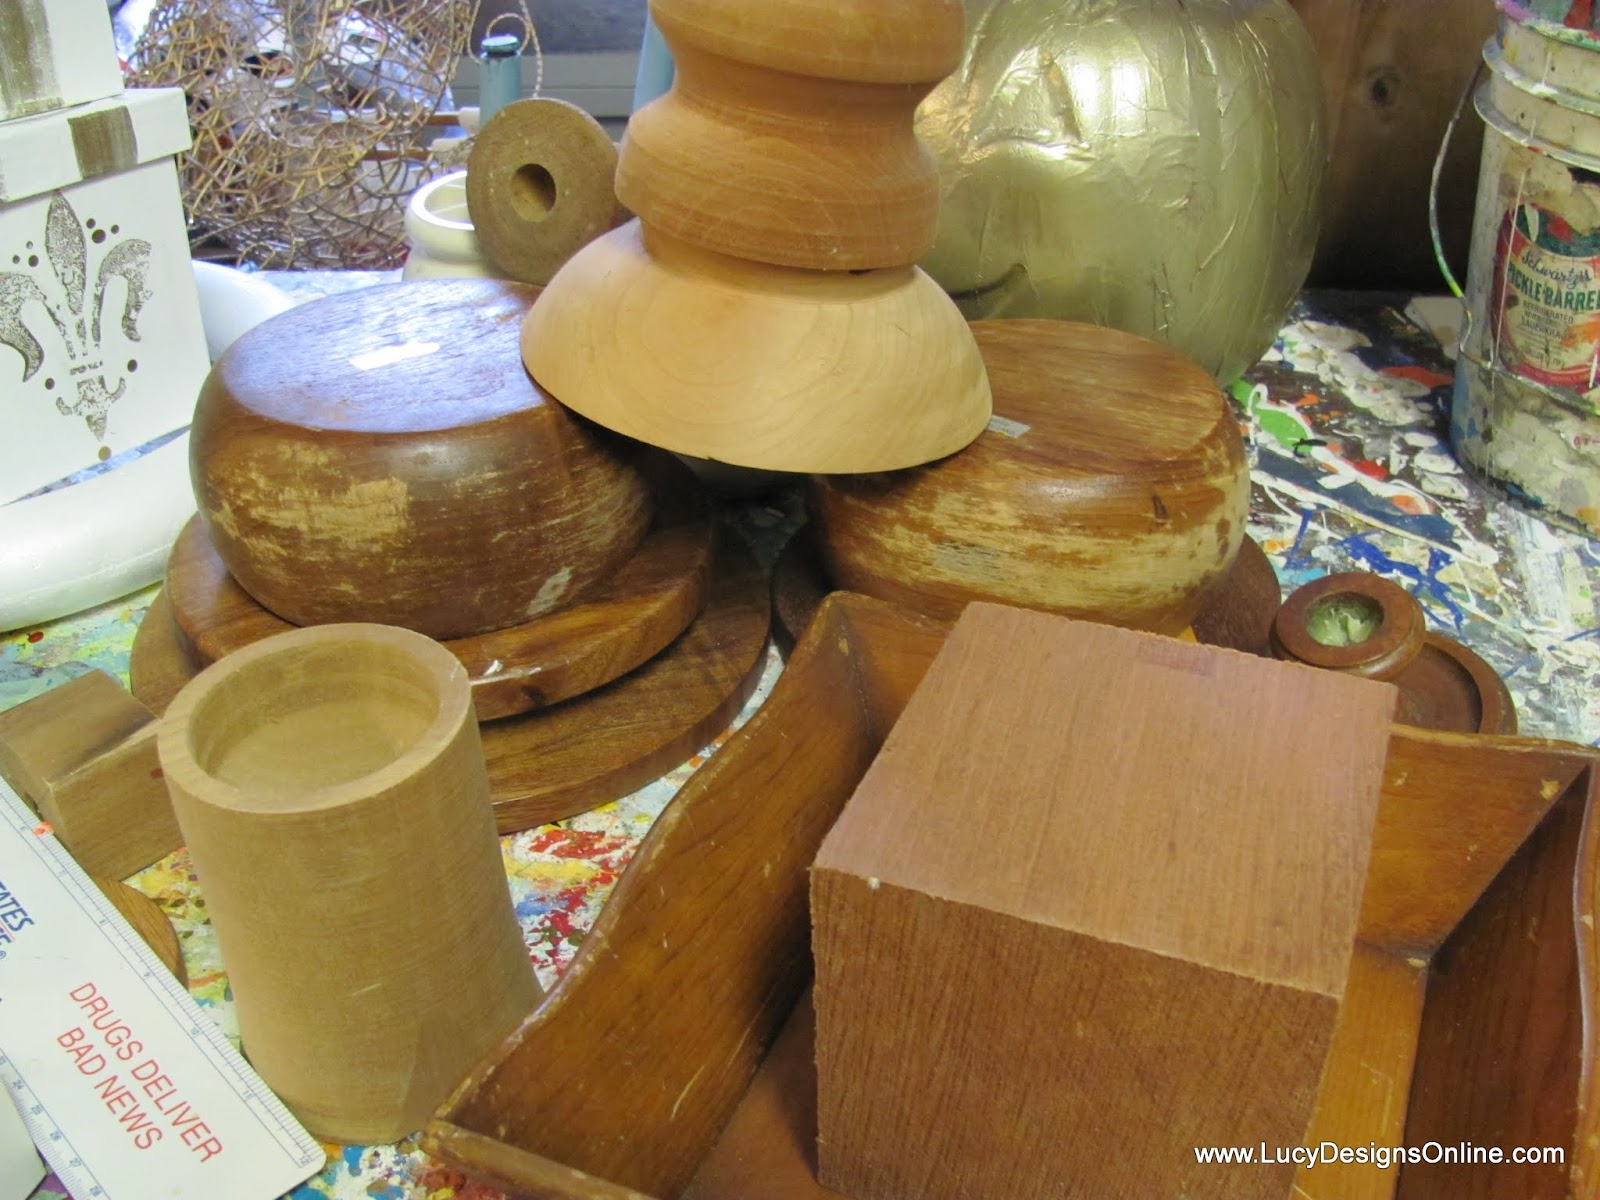 assorted wooden shapes